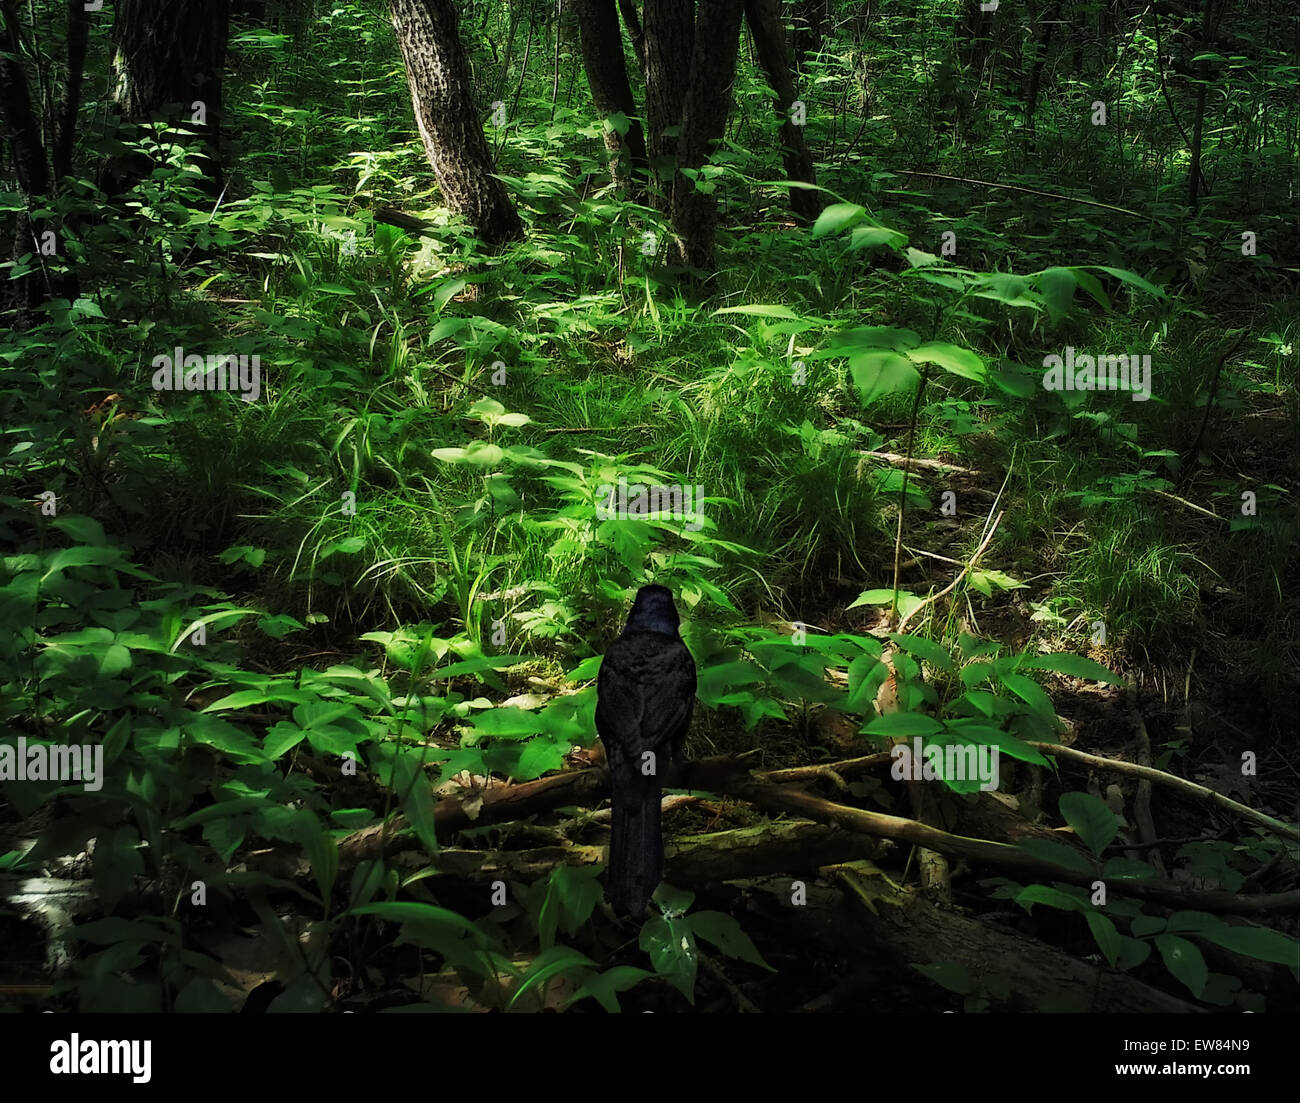 Starling in dark , foreboding forest - Stock Image